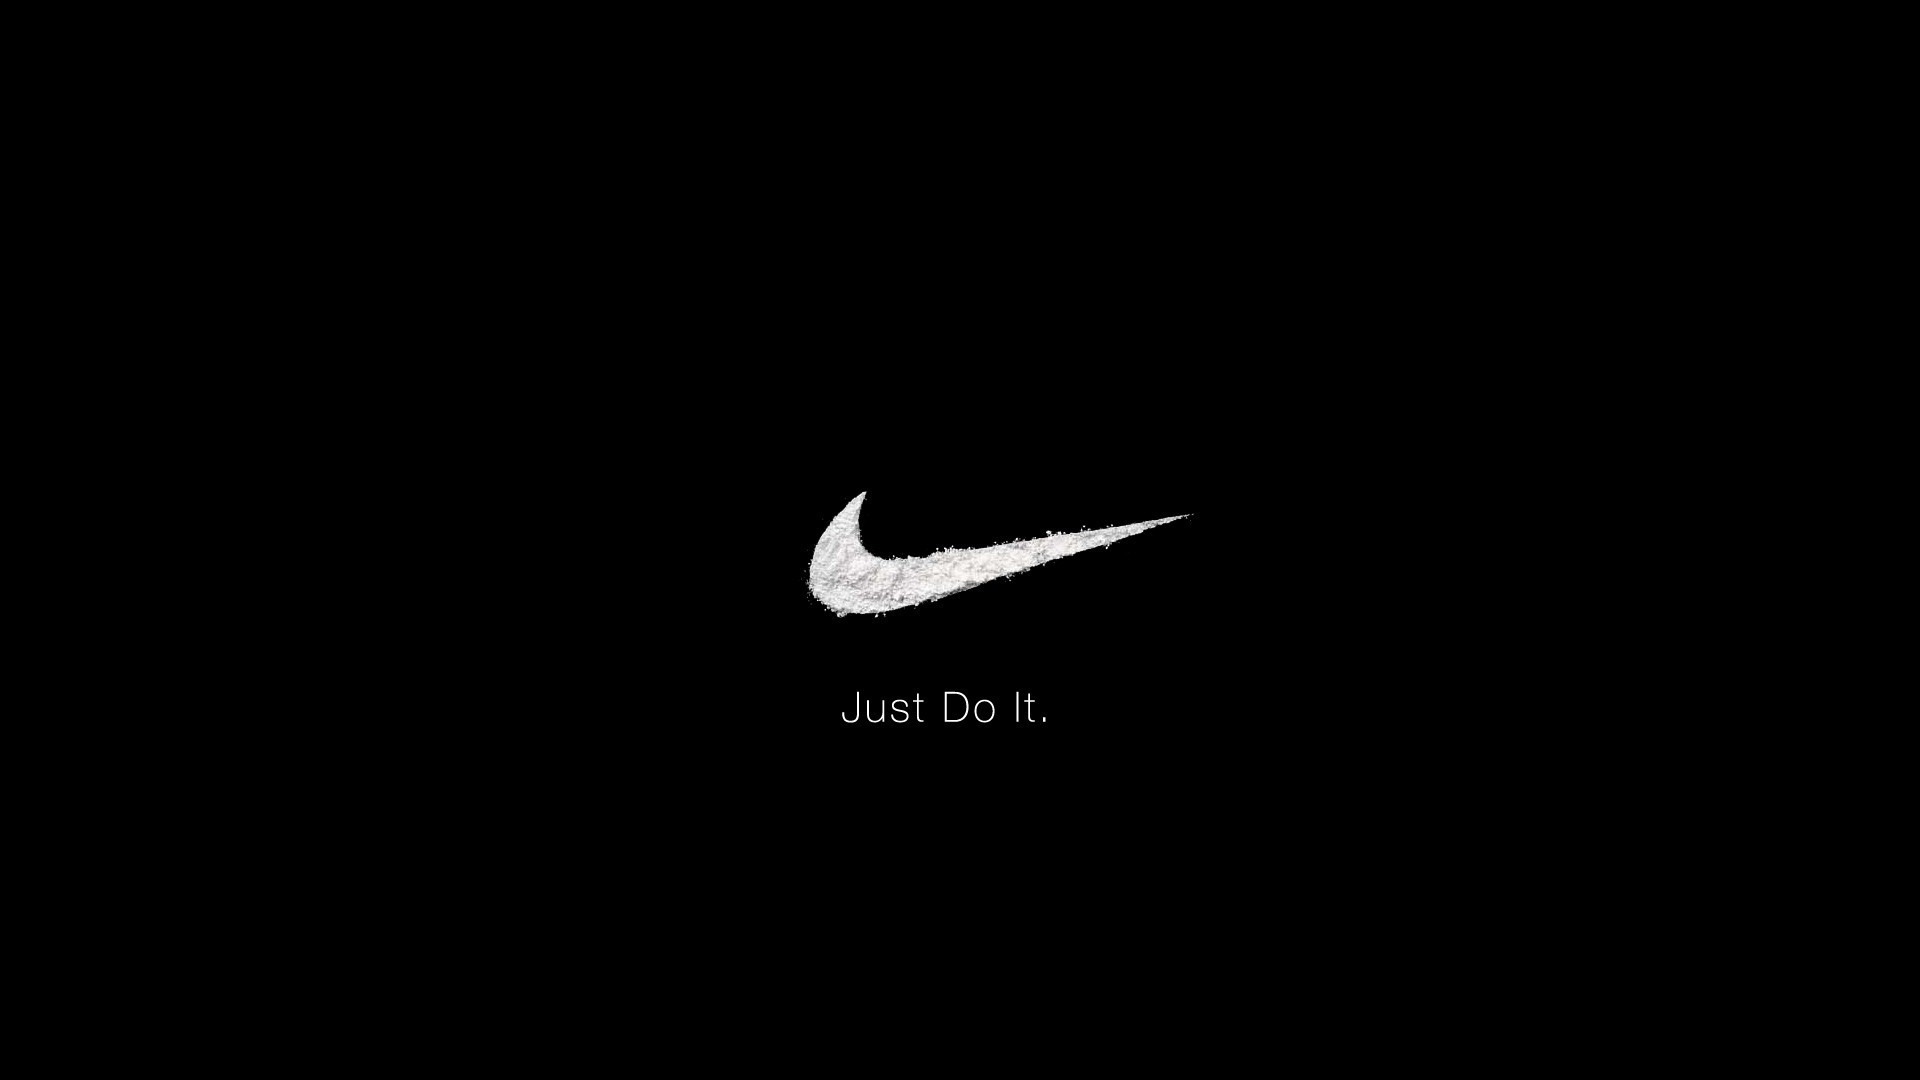 Download Just Do It Wallpaper 23269